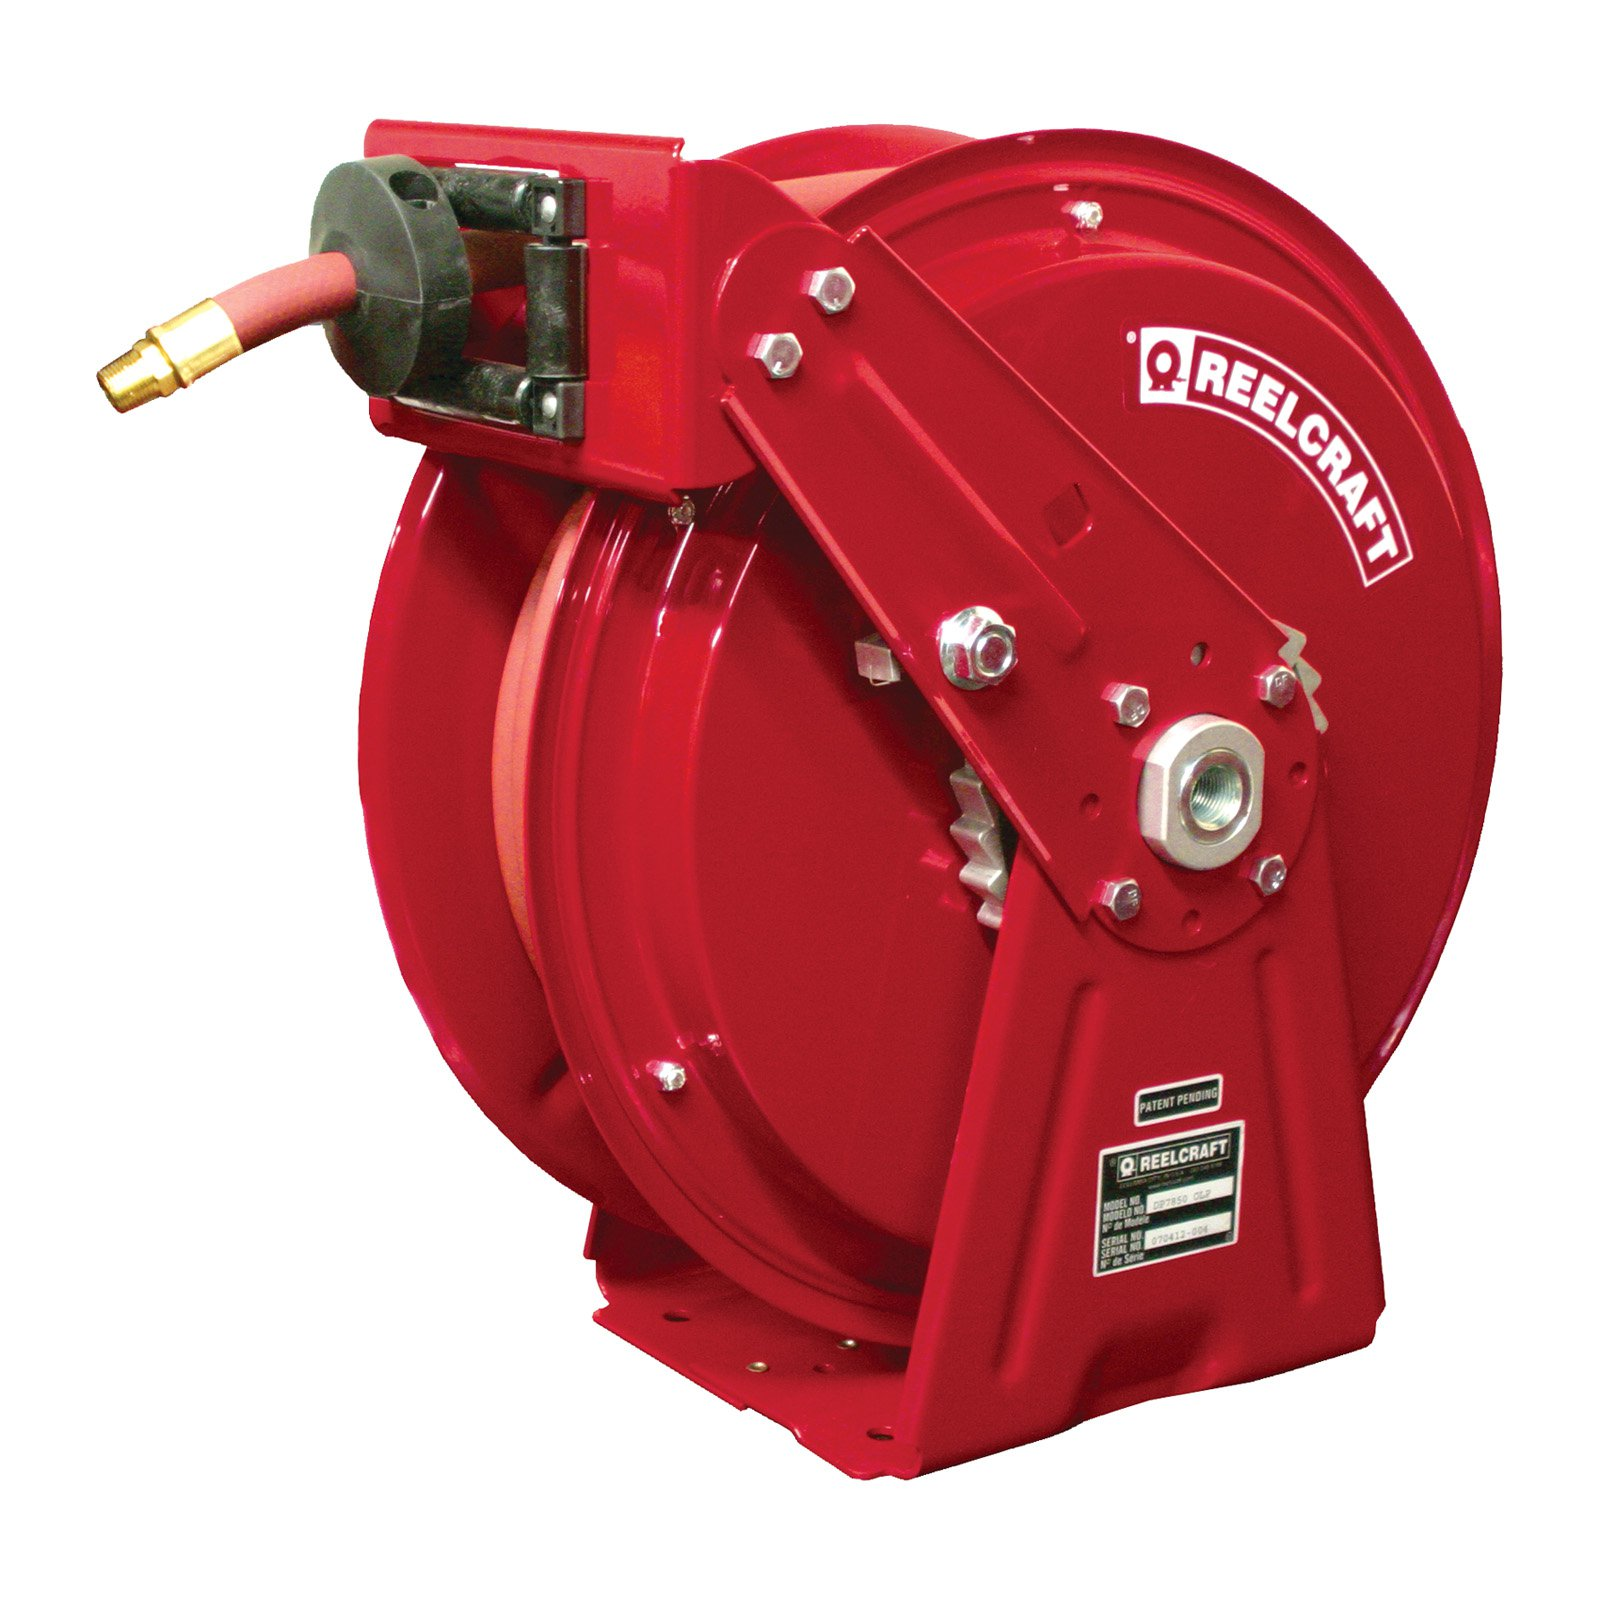 Reelcraft Compact Dual Pedestal Air Water 1 2 in. Hose Reel 50 ft. by Reelcraft